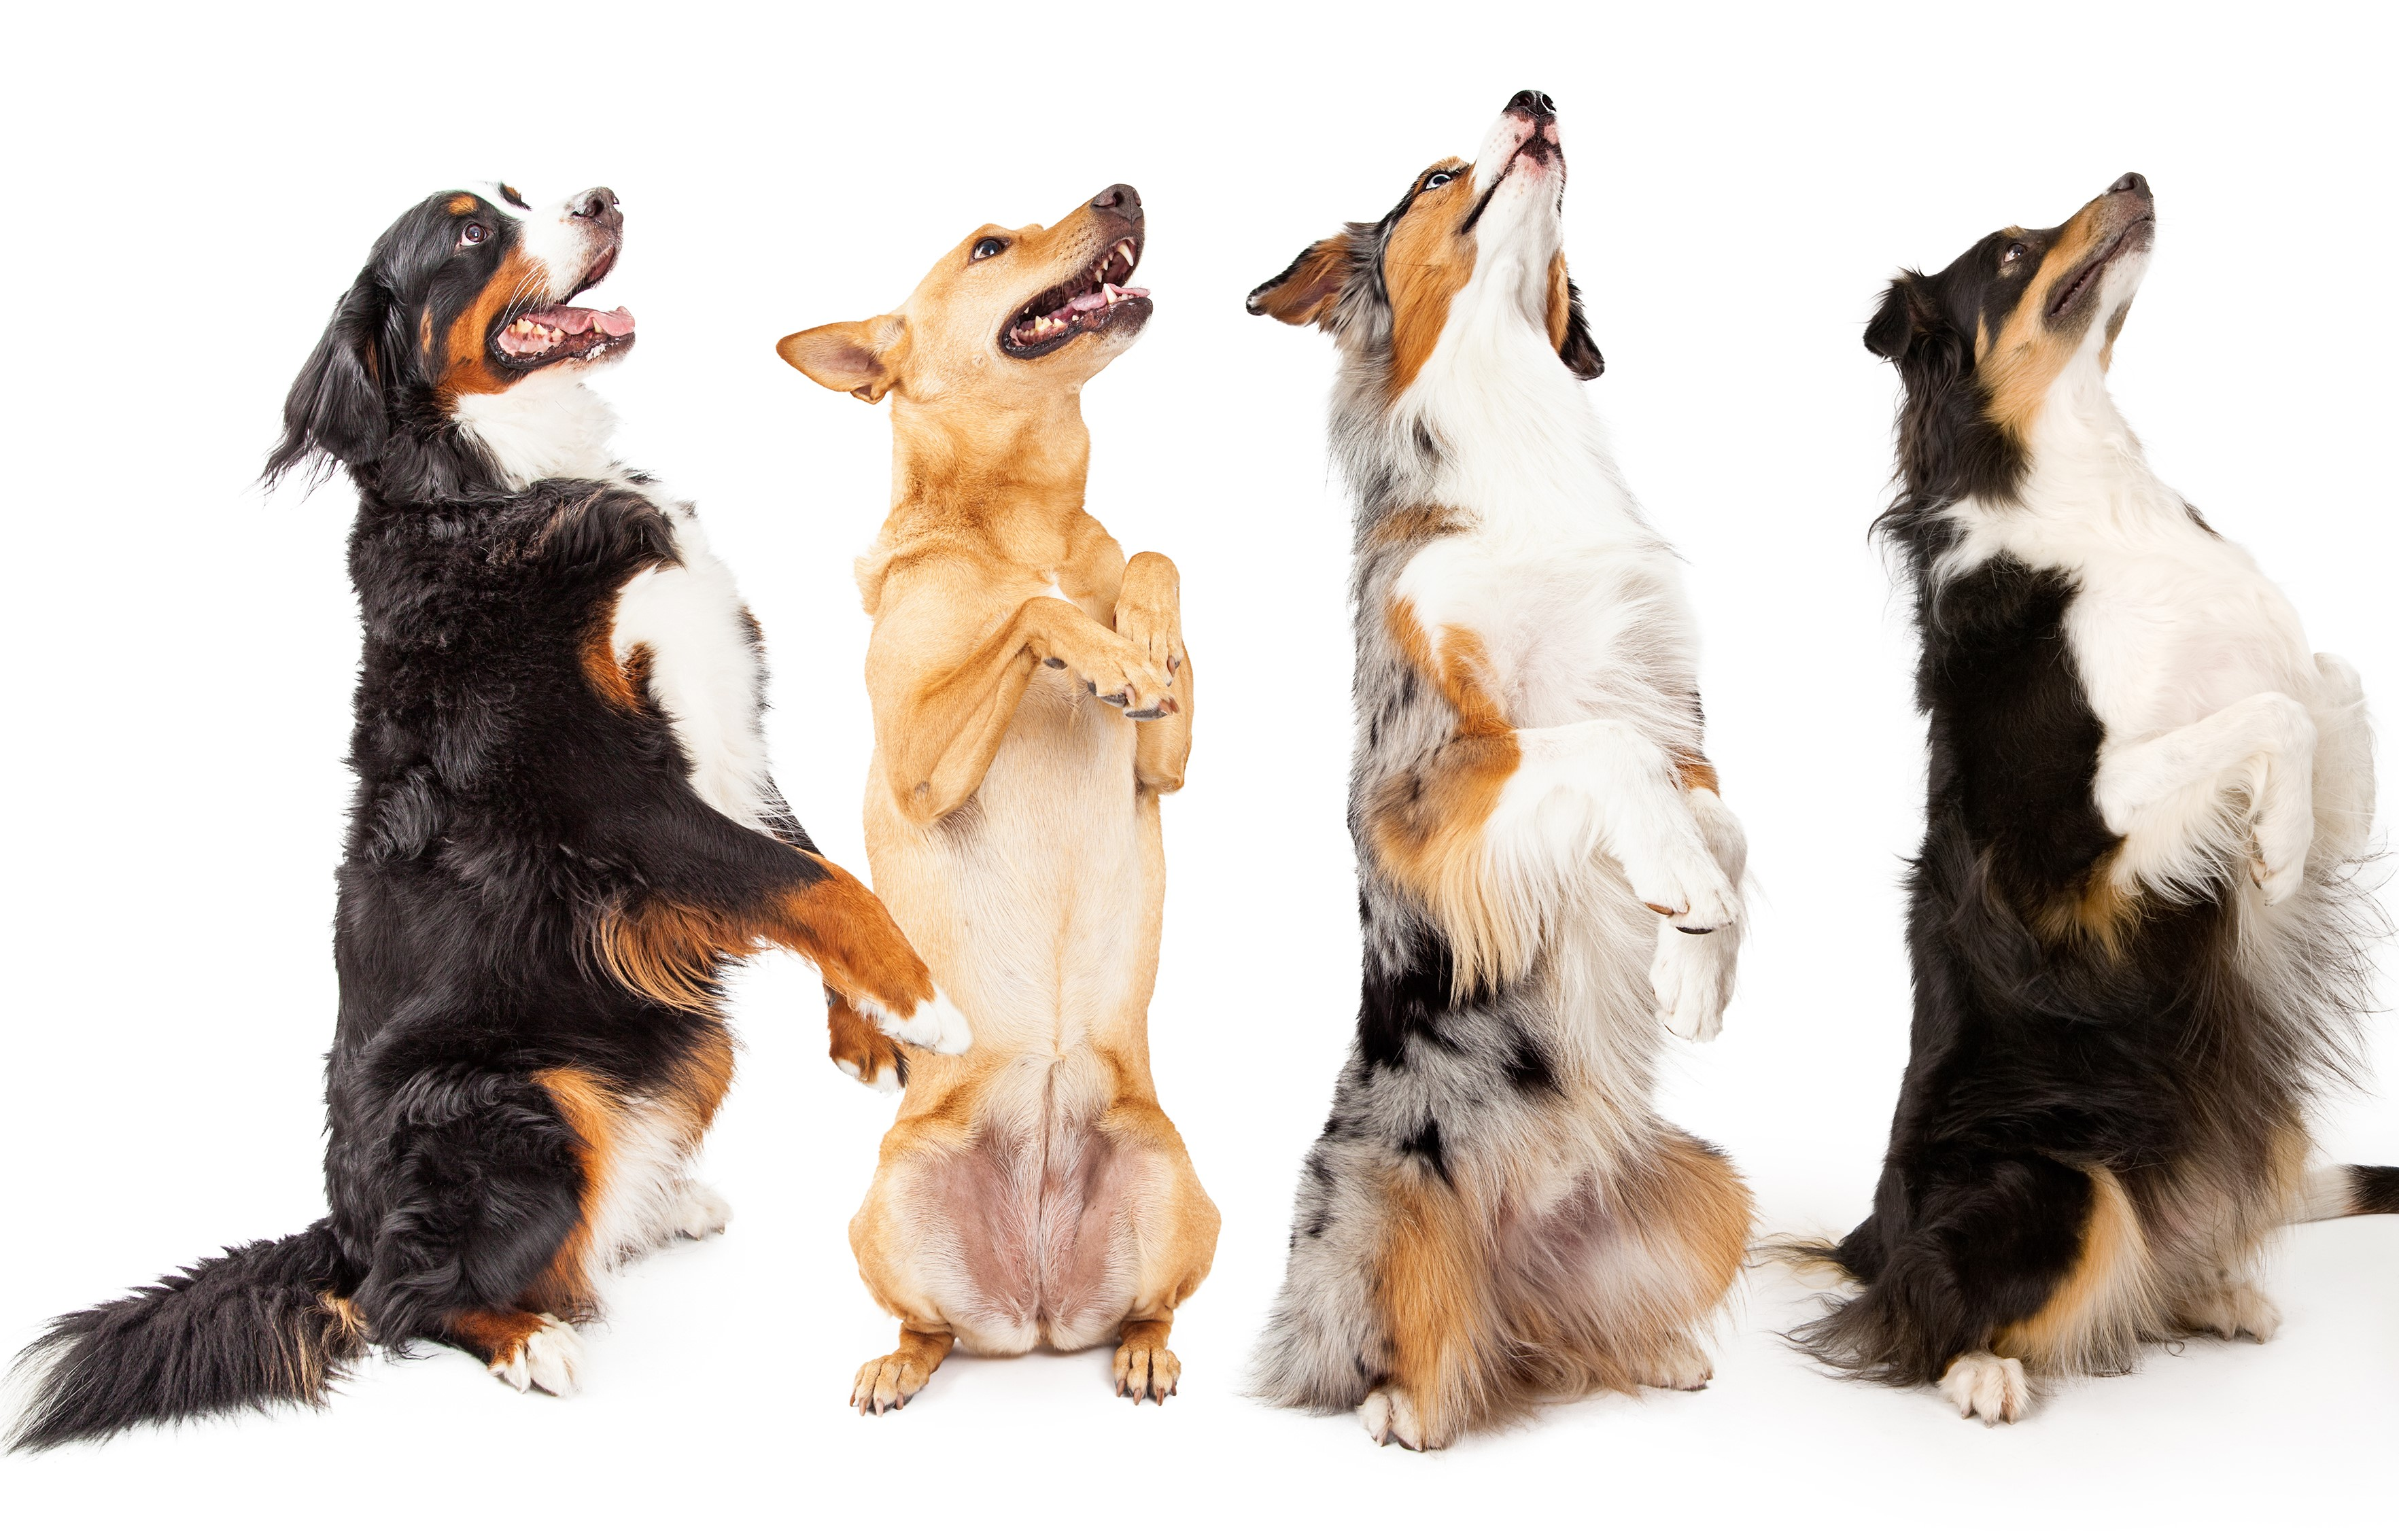 Singing dogs illustrate integrating marketing across media types